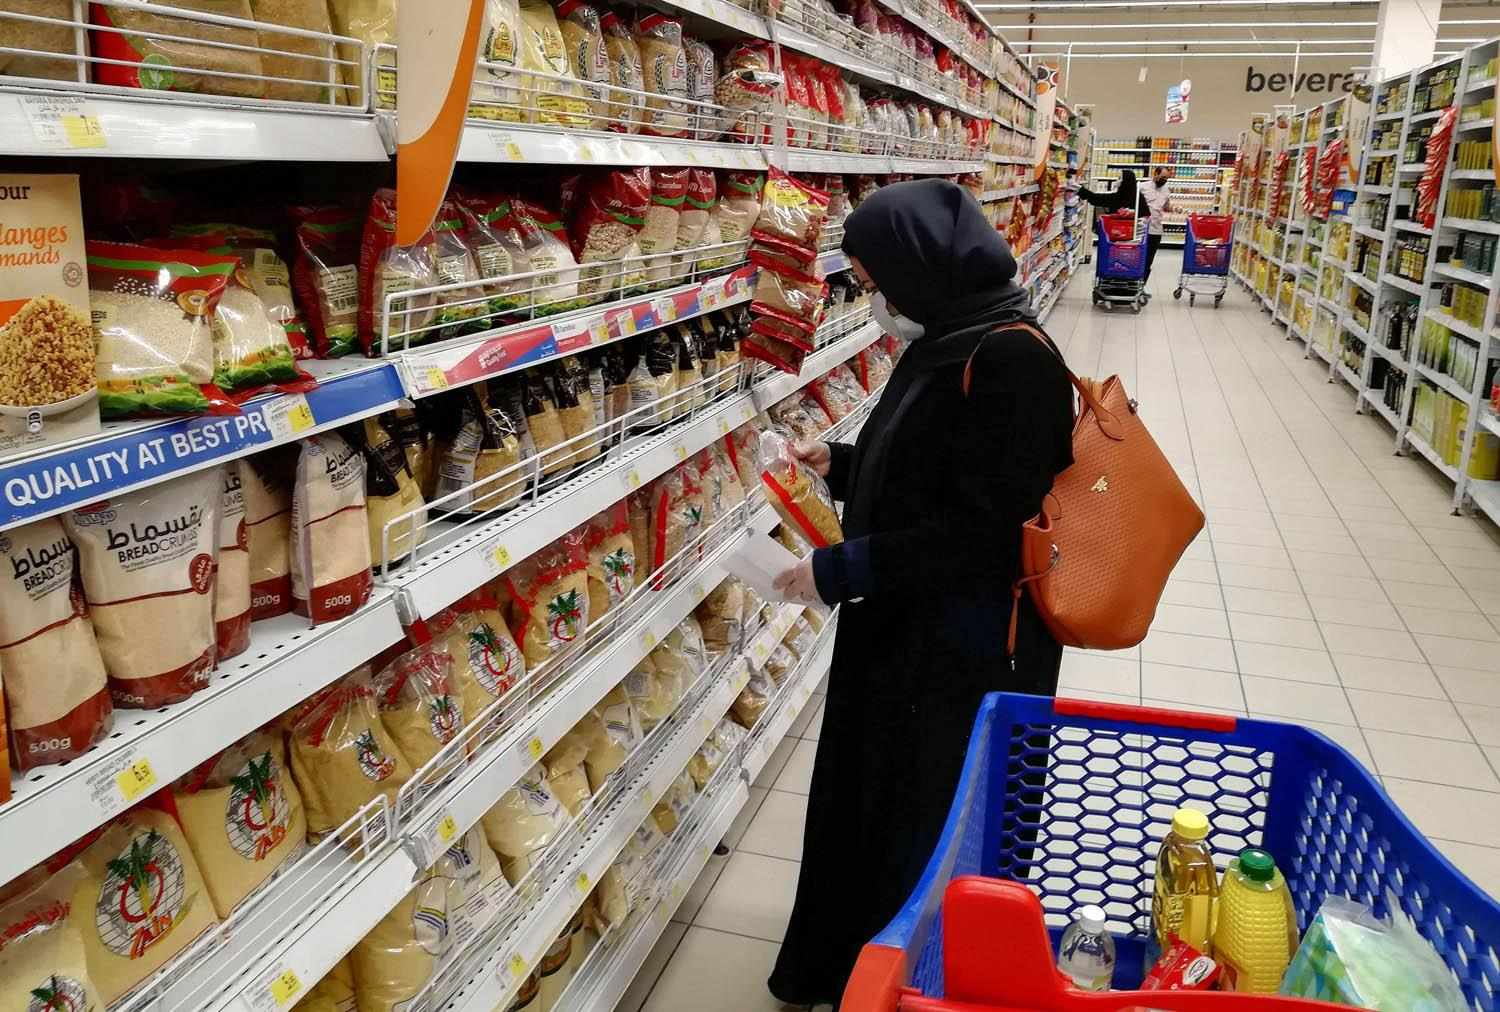 Saudi consumer prices during December increased by 5.3% during December 2020 compared to the same month in 2019.